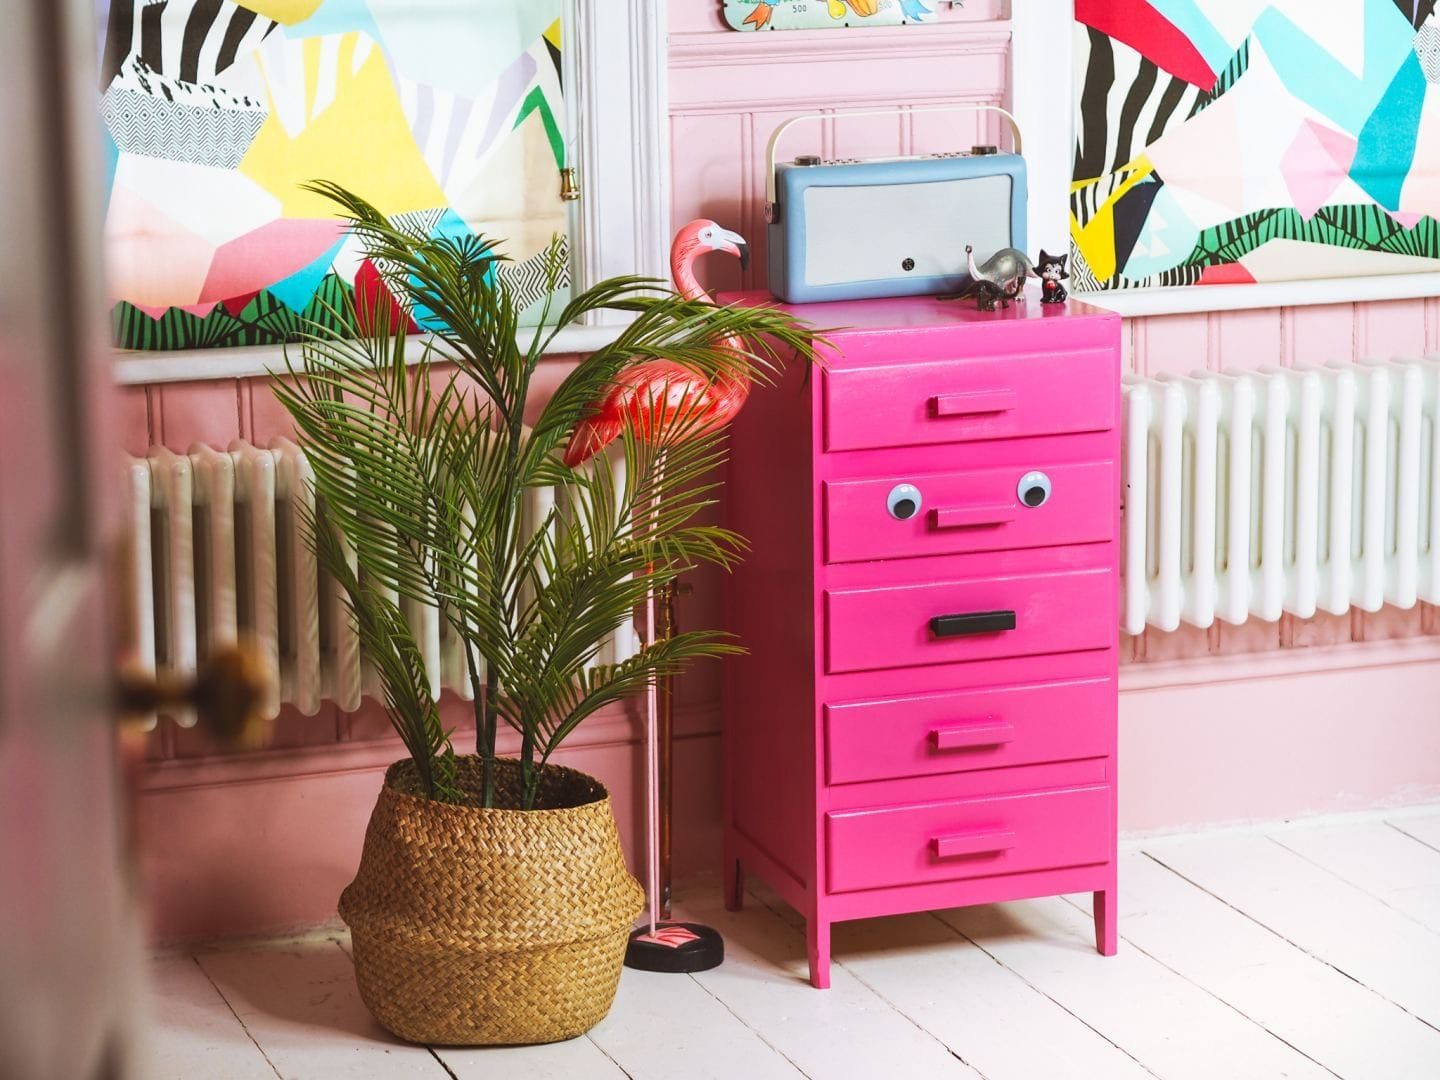 I Upcycled My Drawers… Inspired By An Insta-famous Pink Door With Eyes!